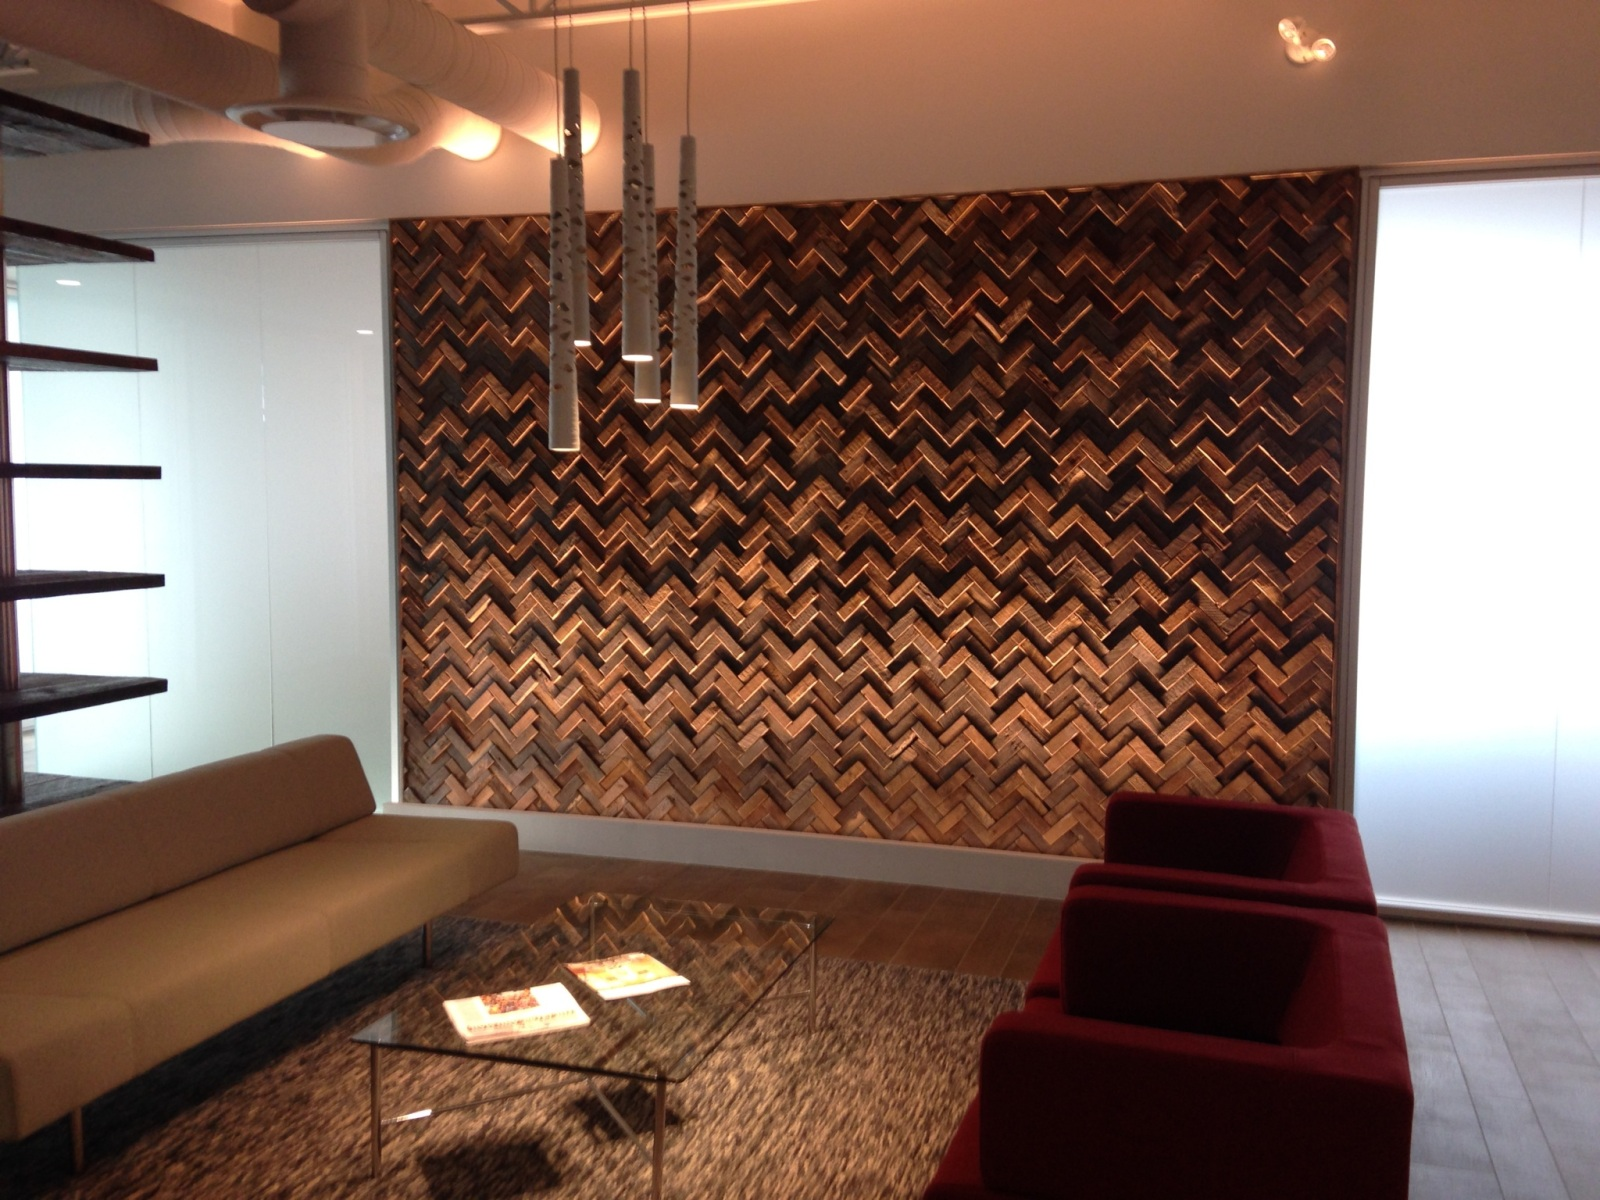 Unique wood wall covering ideas homesfeed for Wallcovering ideas